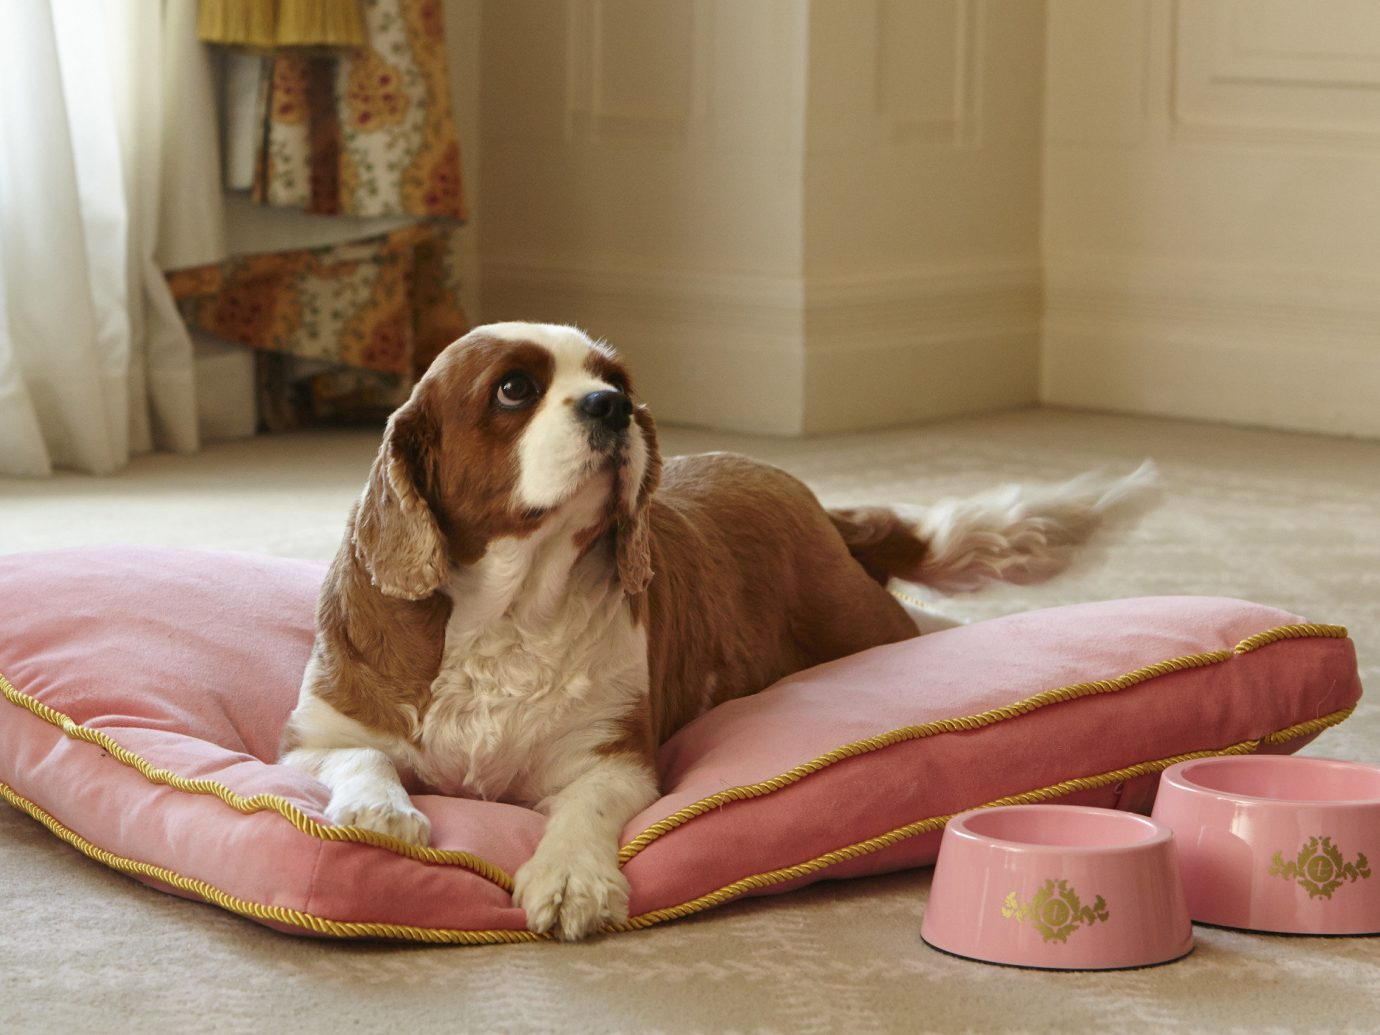 Hotels indoor Dog mammal laying cavalier king charles spaniel dog like mammal furniture puppy